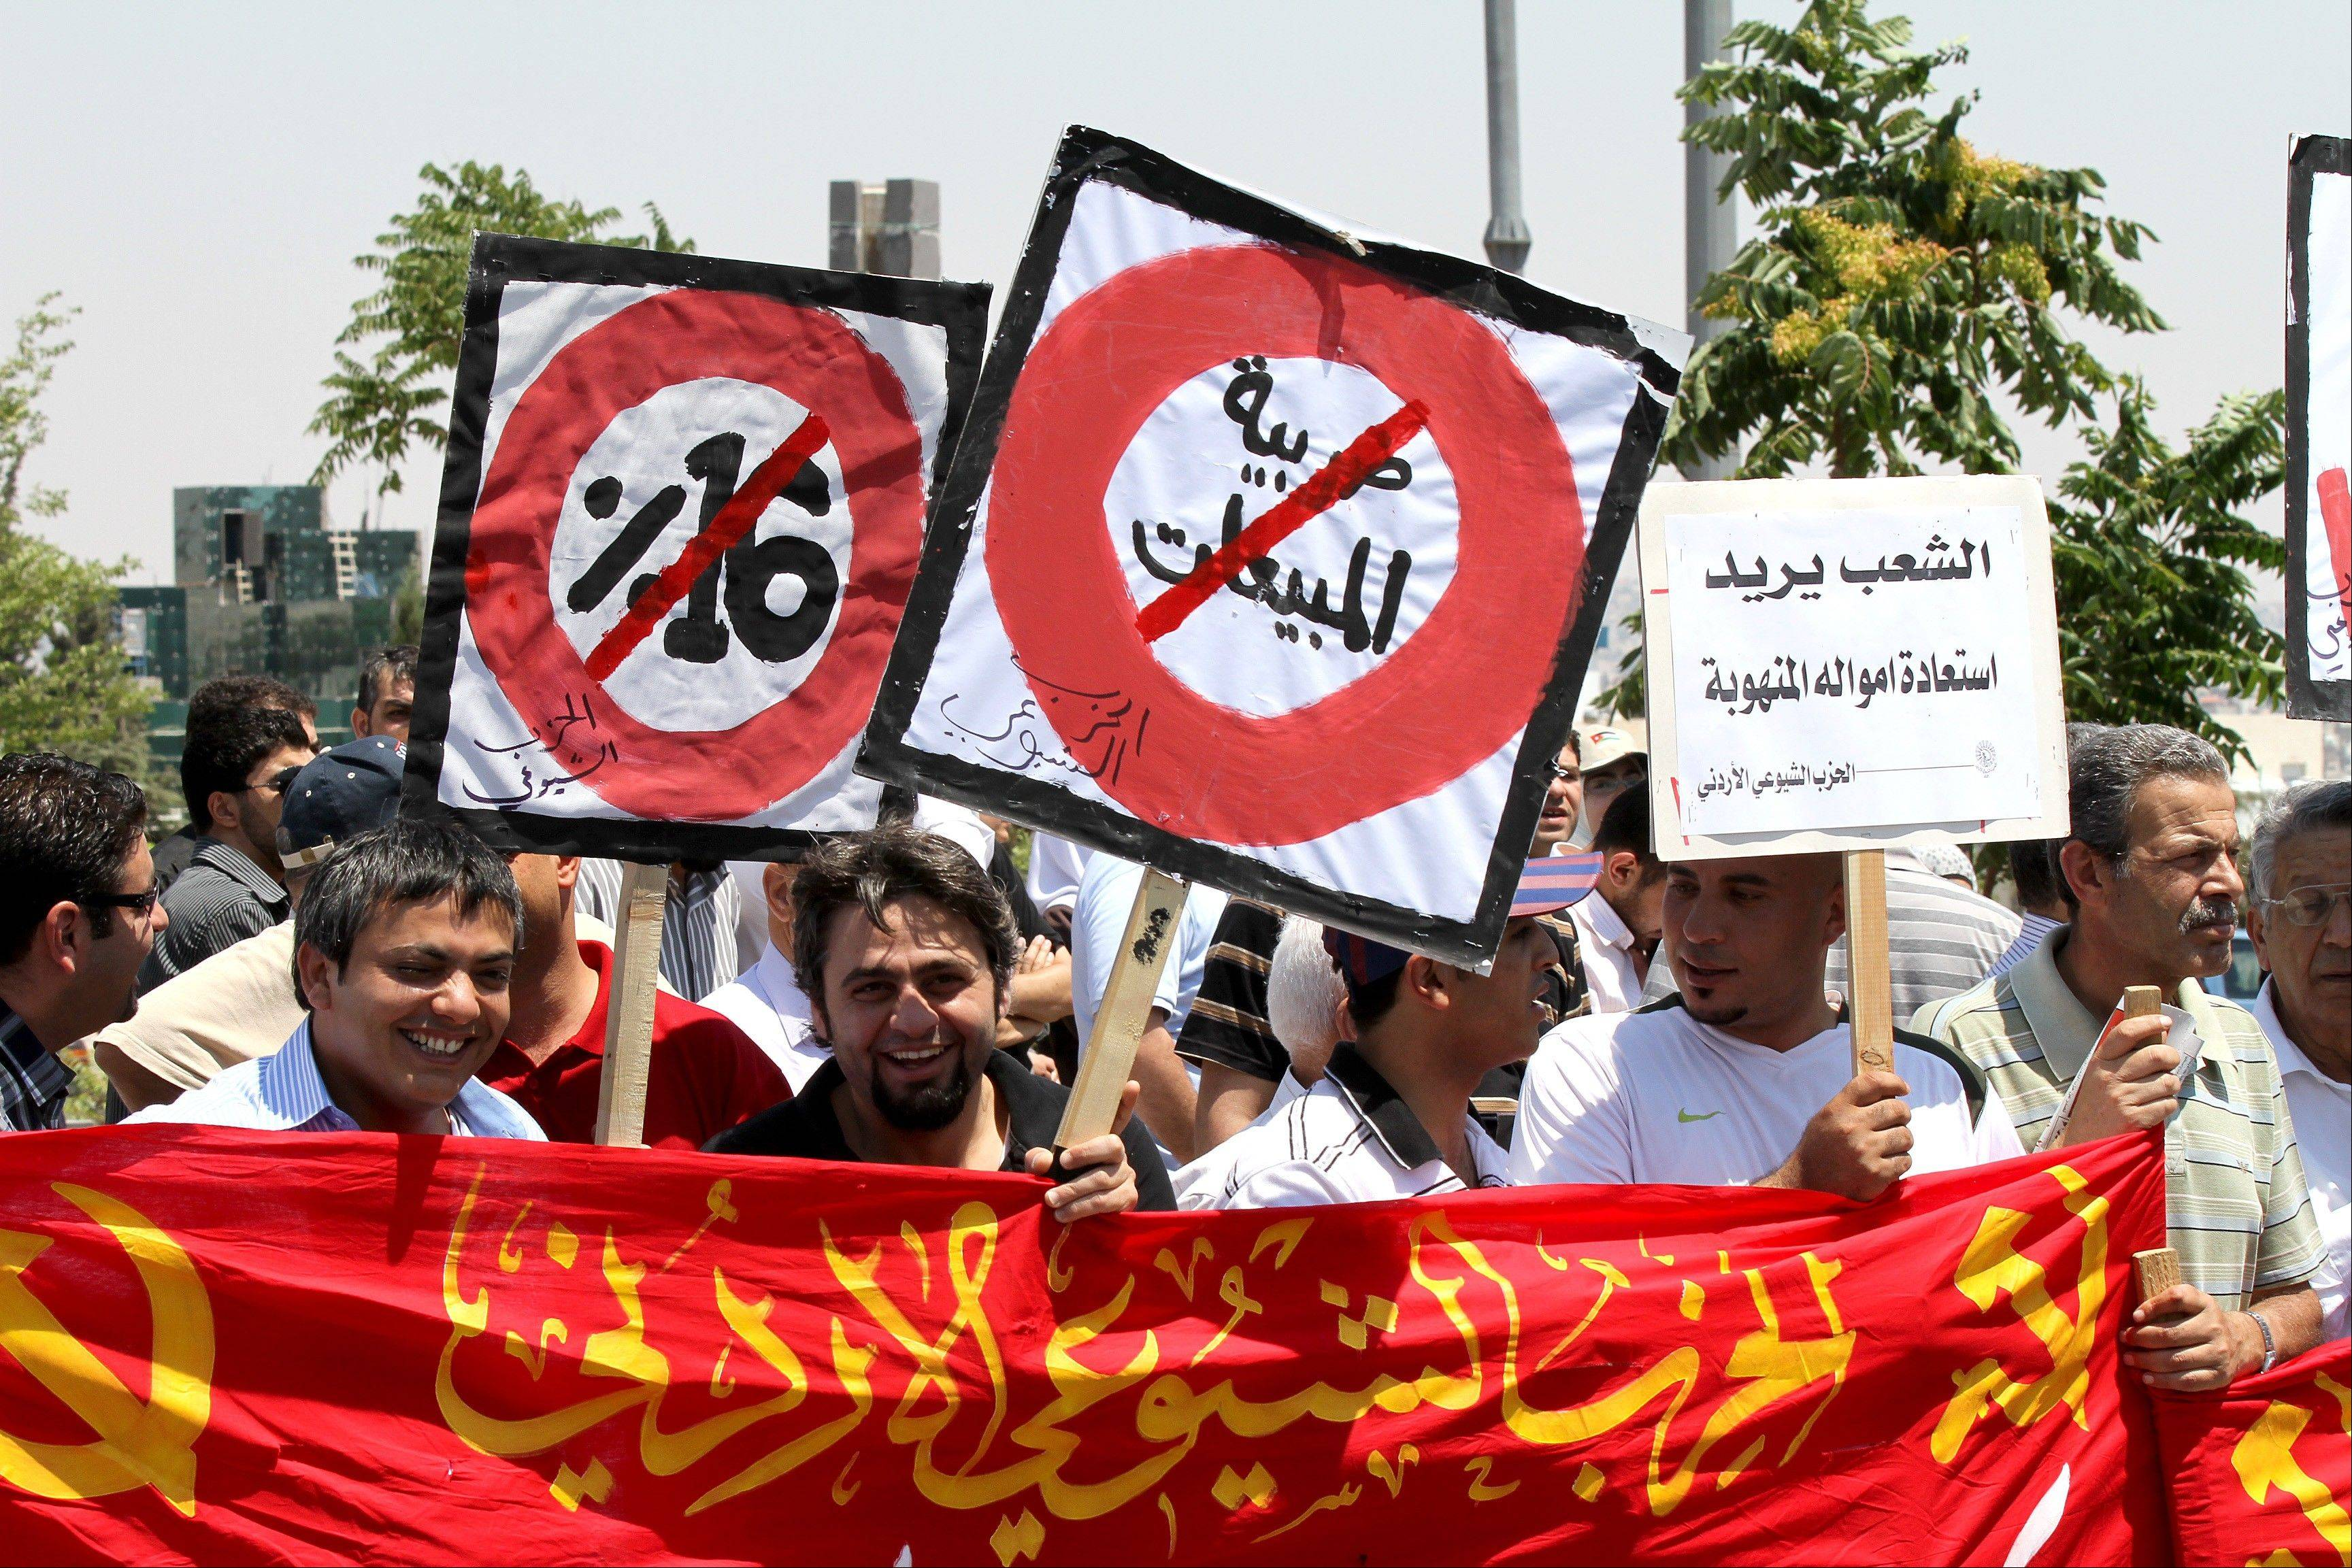 "Supporters of the Communist party holds banners demanding of cancellation of the sales tax during a demonstration by opposition parties demanding an end to government corruption in front of the prime minister's office in Amman, Jordan. White placard on right reads, ""People want the stolen money back."" The unrest of the Arab Spring has thrown much of the Middle East into turmoil, but a handful of countries have found ways to prevent or calm the anger of the streets. At the heart of the political standoff in Jordan is a half-British king and darling of Western governments who is trying to avoid the tumult."